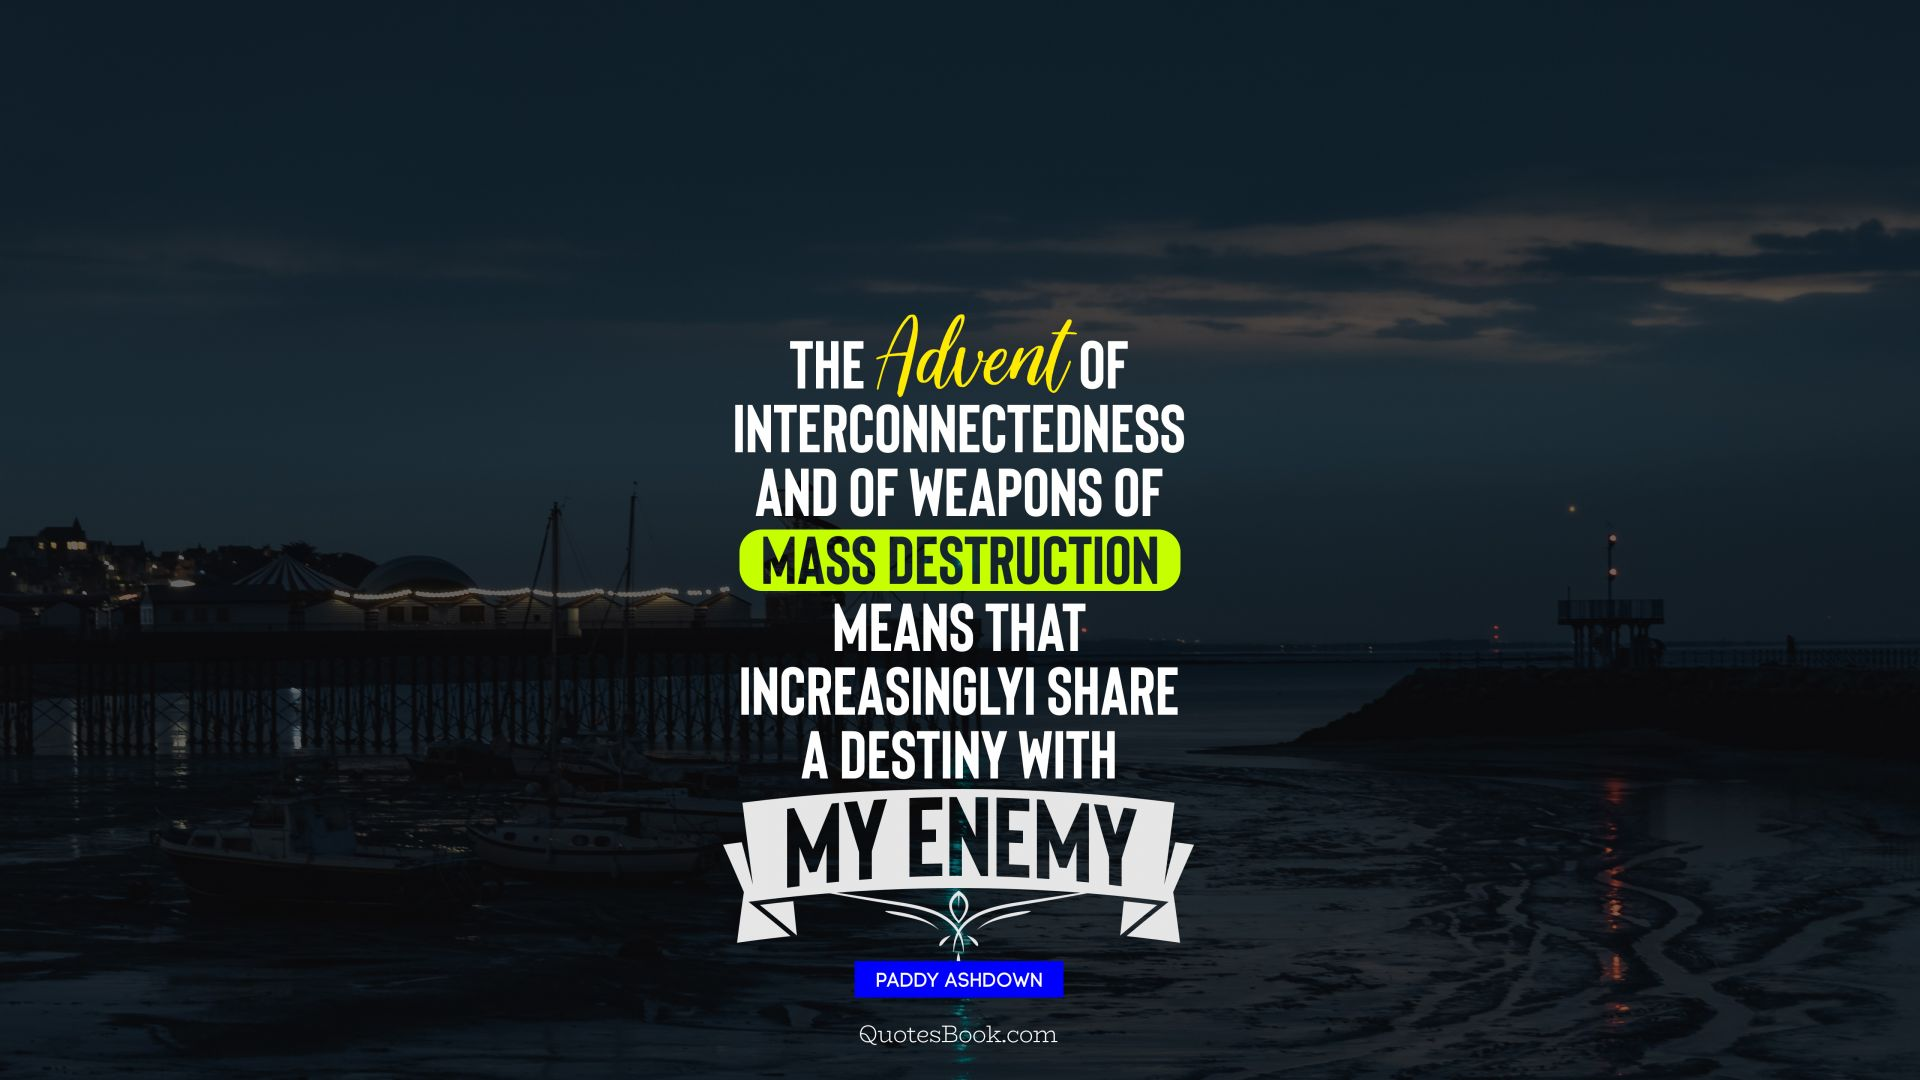 The advent of interconnectedness and of weapons of mass destruction means that, increasingly, I share a destiny with my enemy. - Quote by Paddy Ashdown